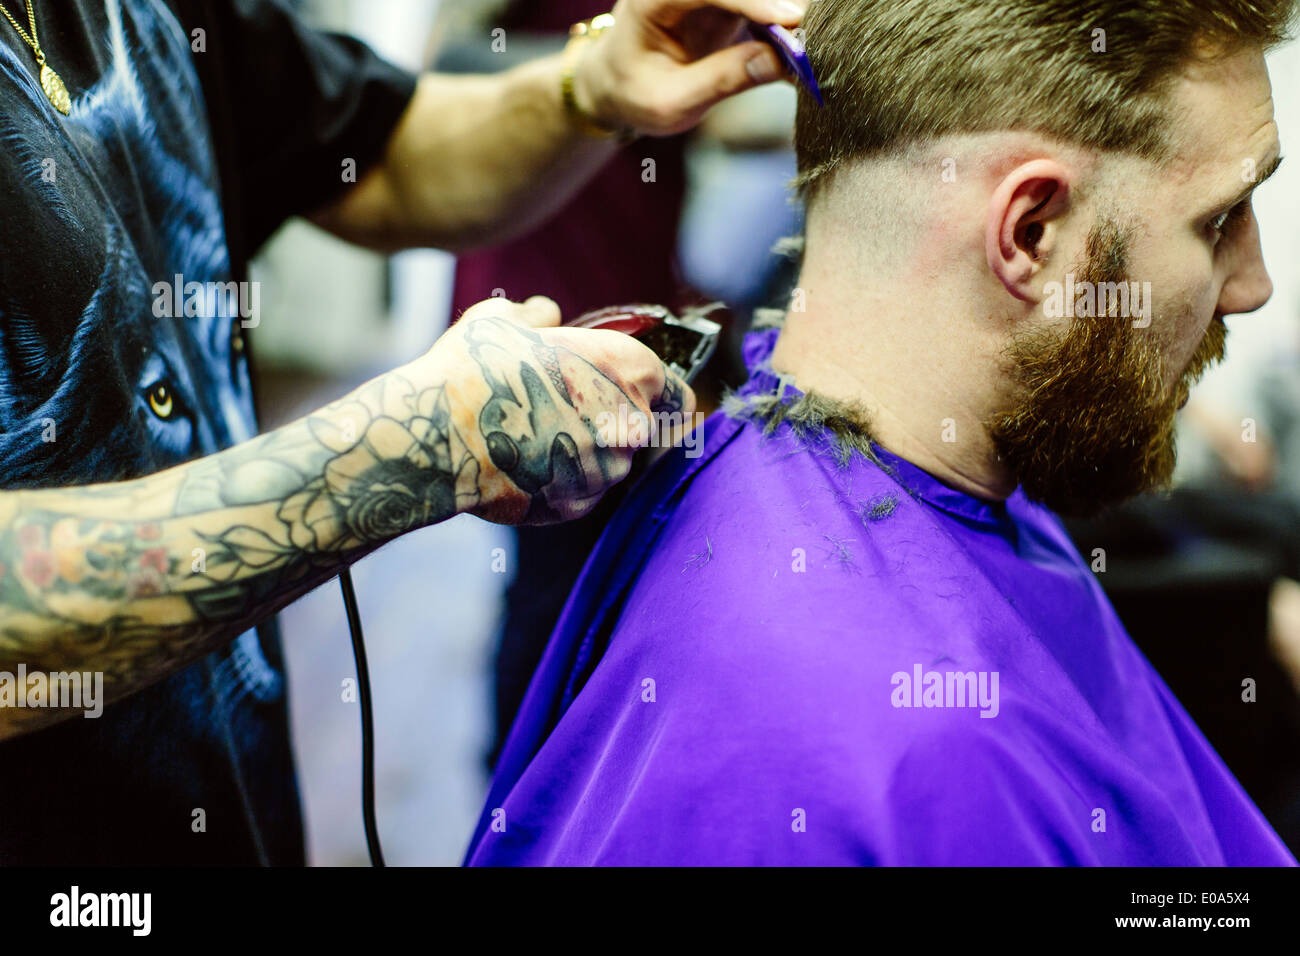 Close up of barber clipping clients hair - Stock Image